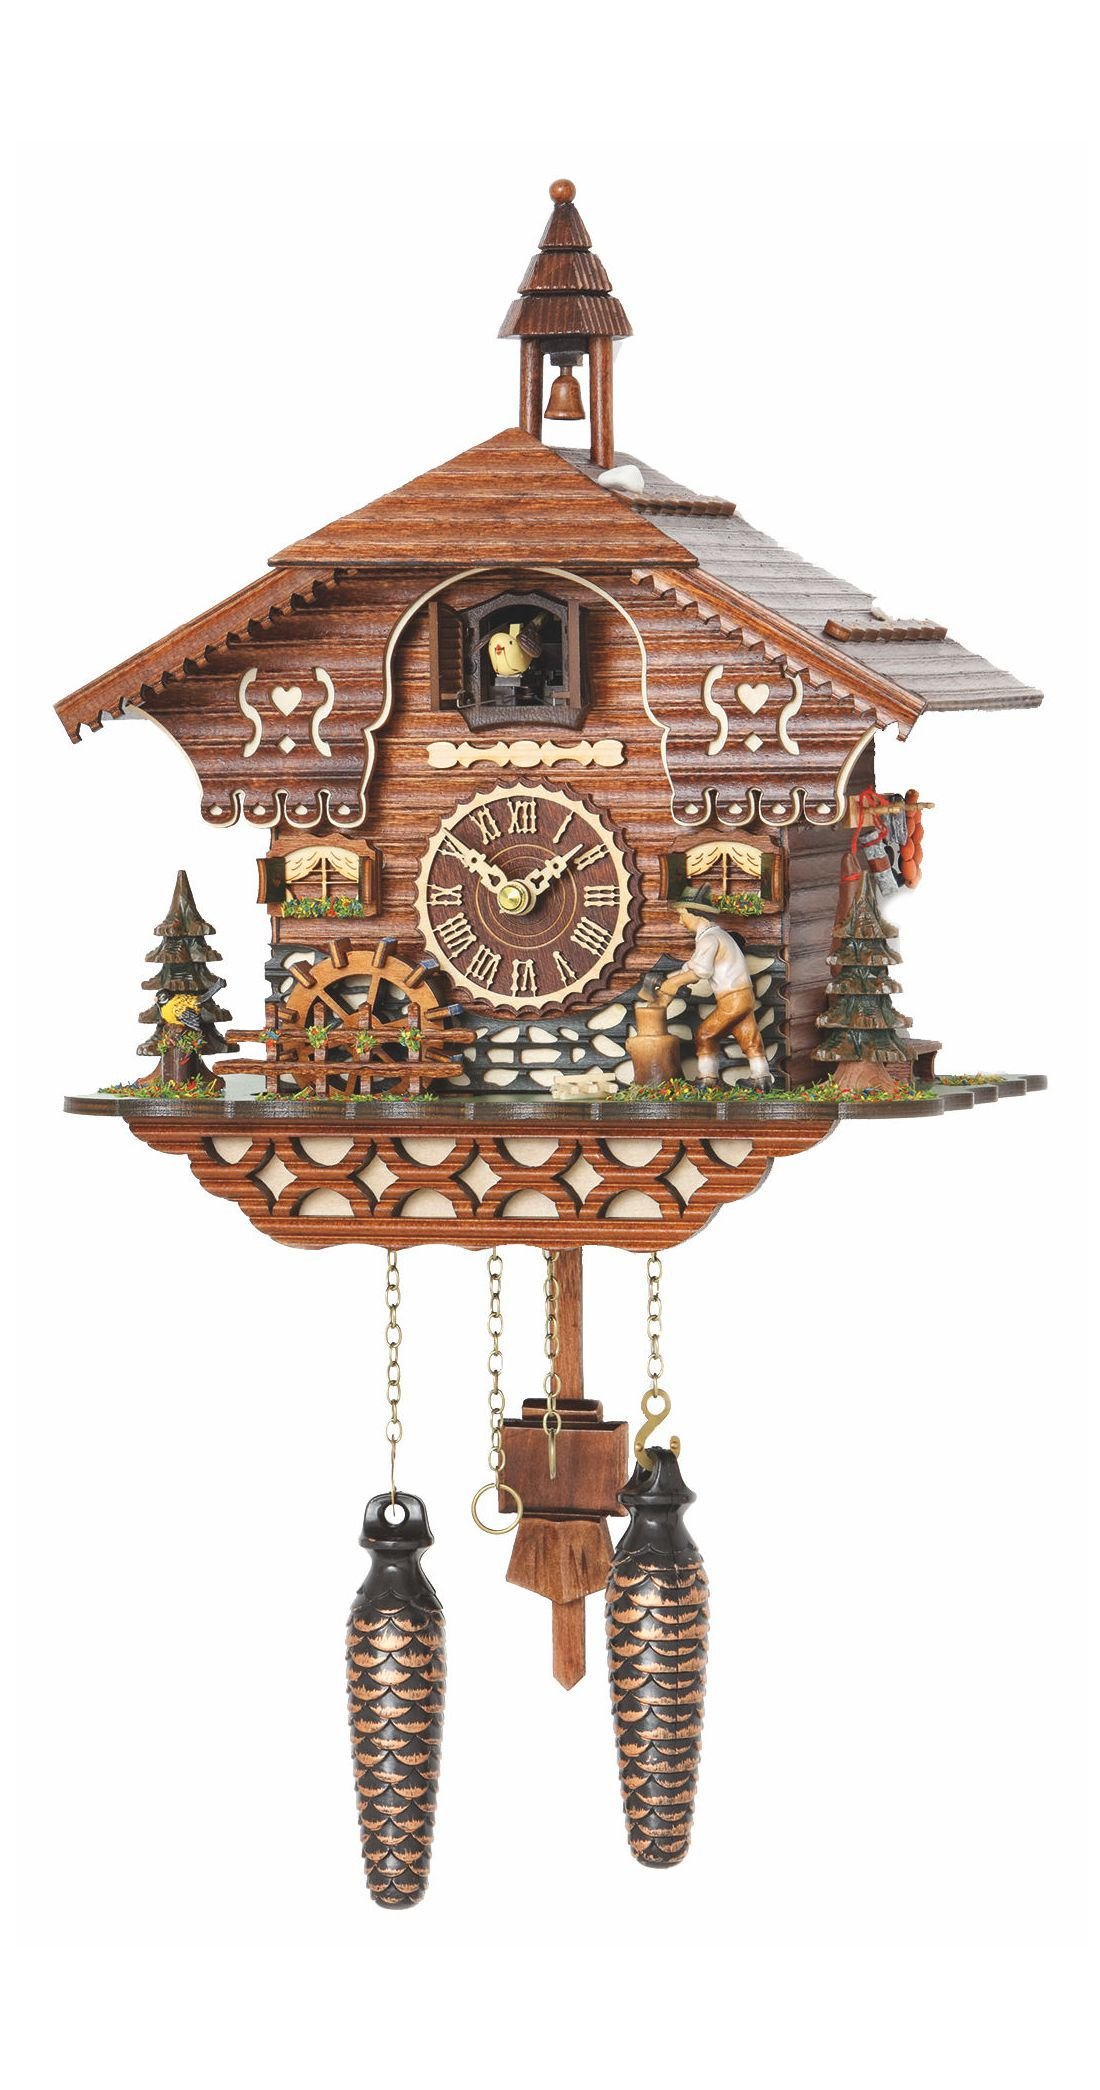 Quartz Cuckoo Clock Black Forest house with moving wood chopper and mill wheel, with music, incl. batteries TU 4217 QM by Trenkle Uhren